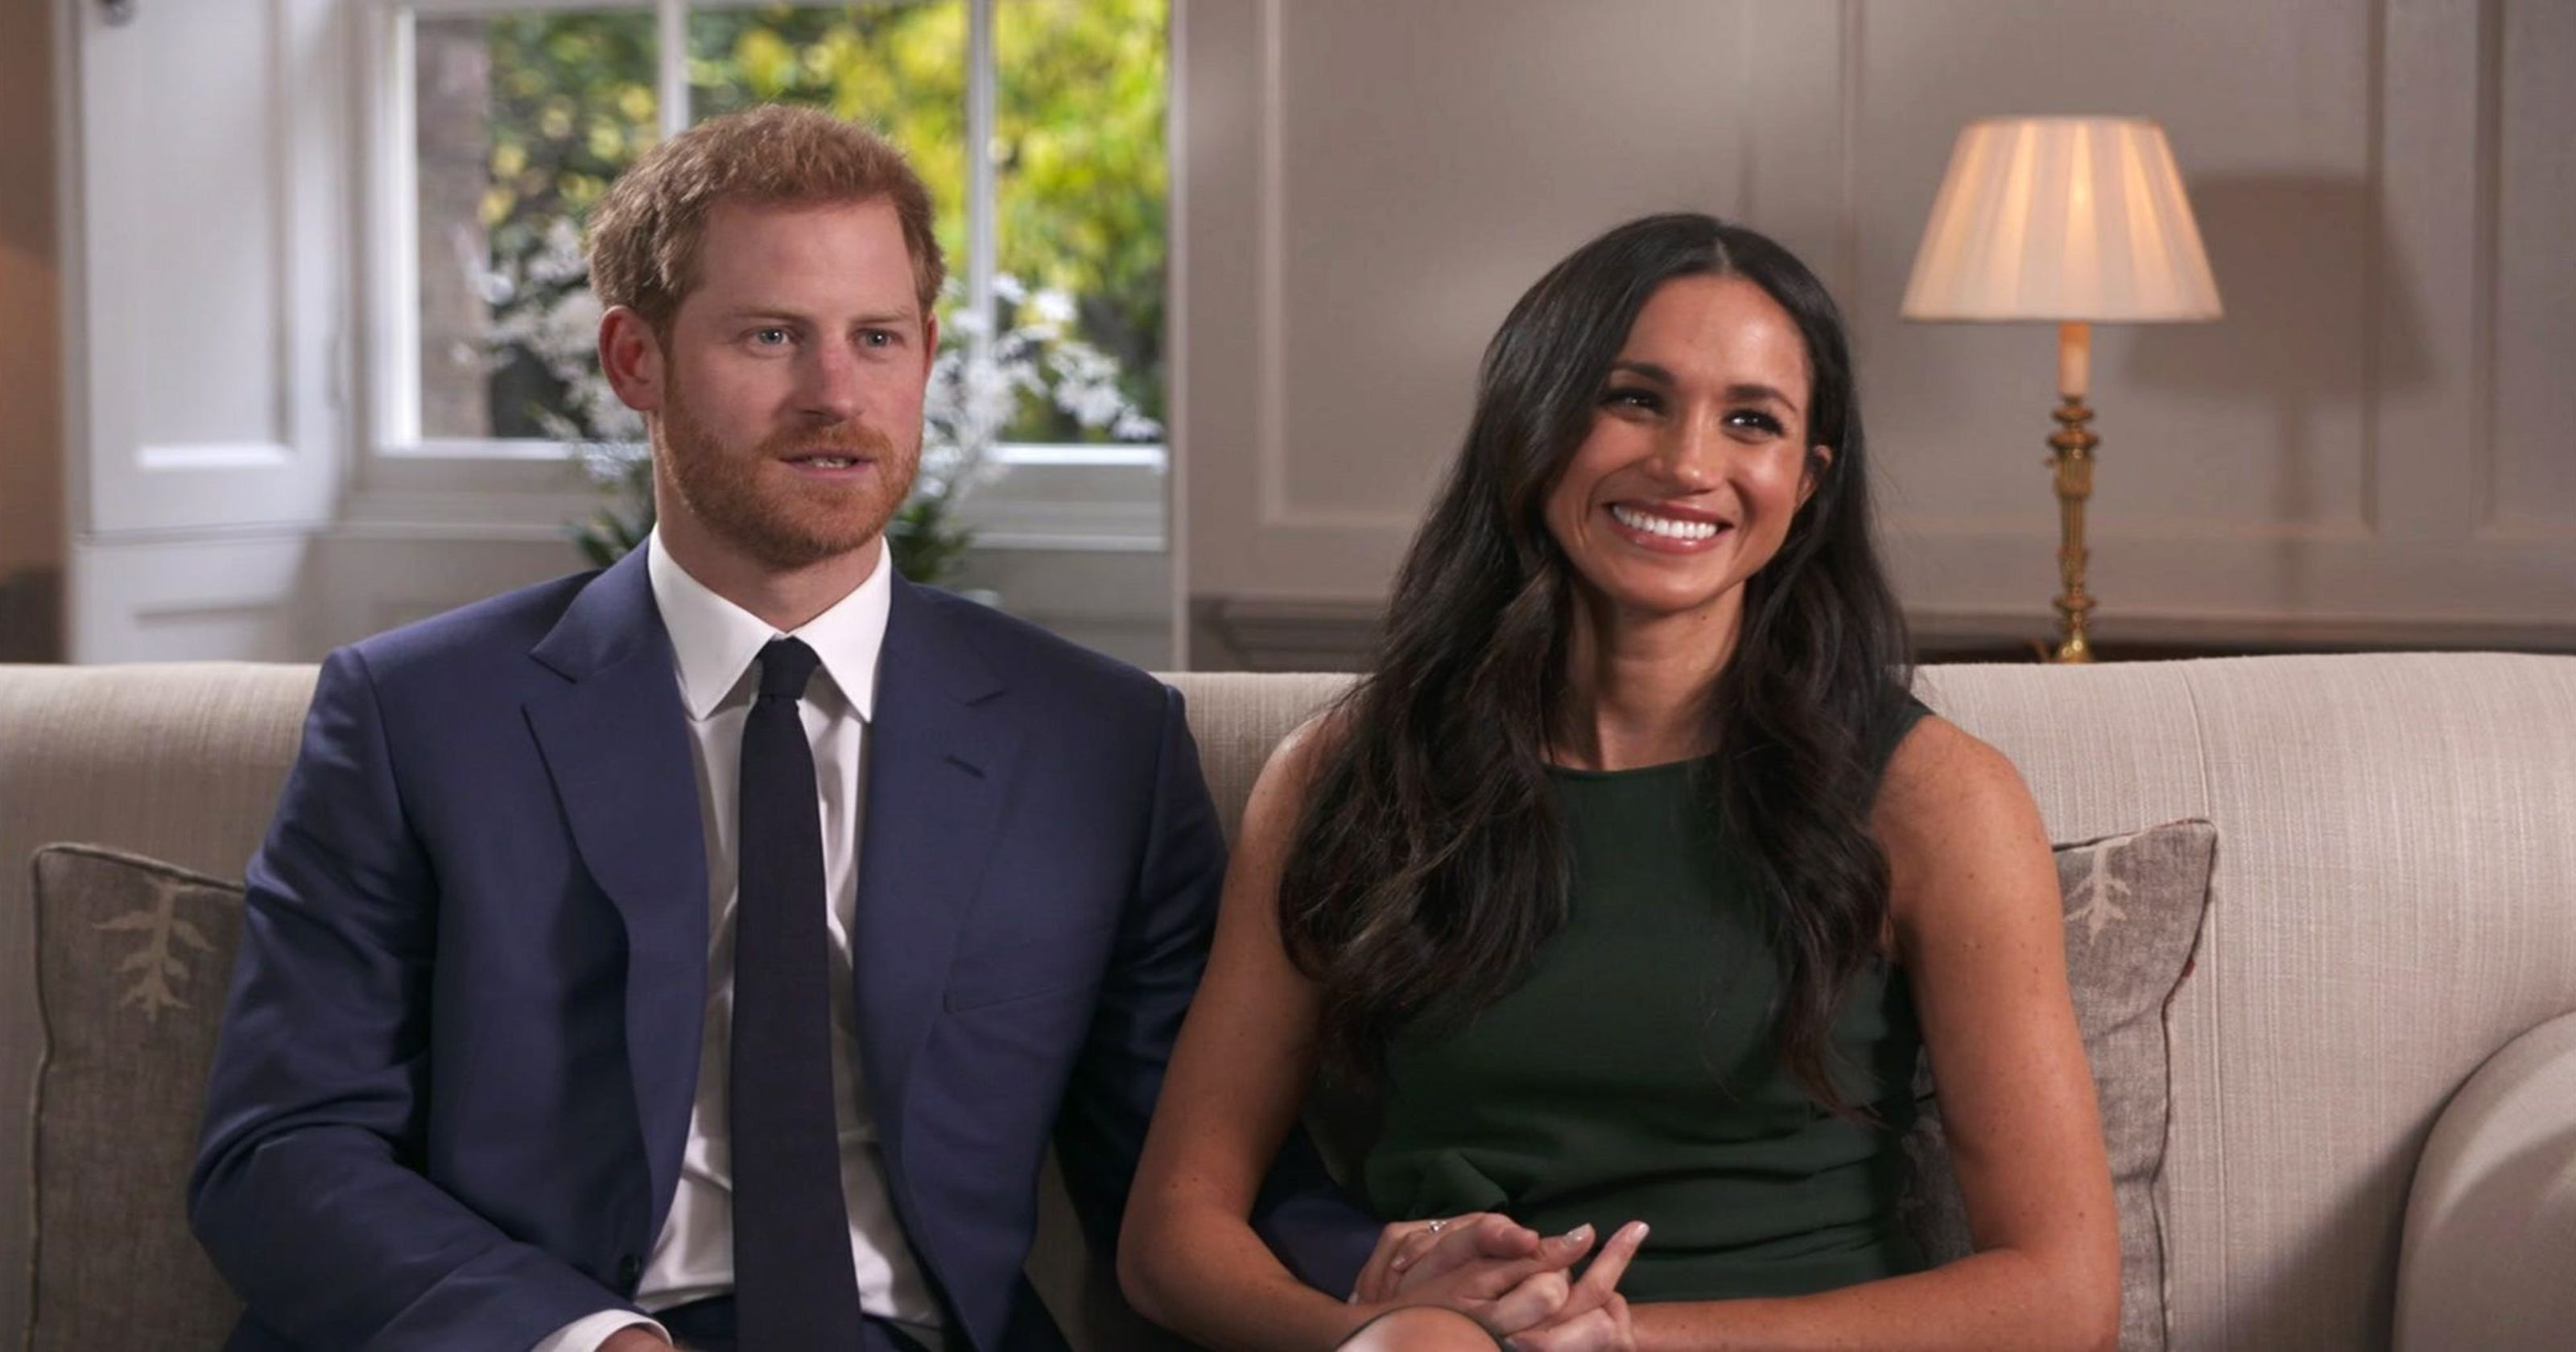 11 Questions About The Prince Harry Meghan Markle Royal Wedding